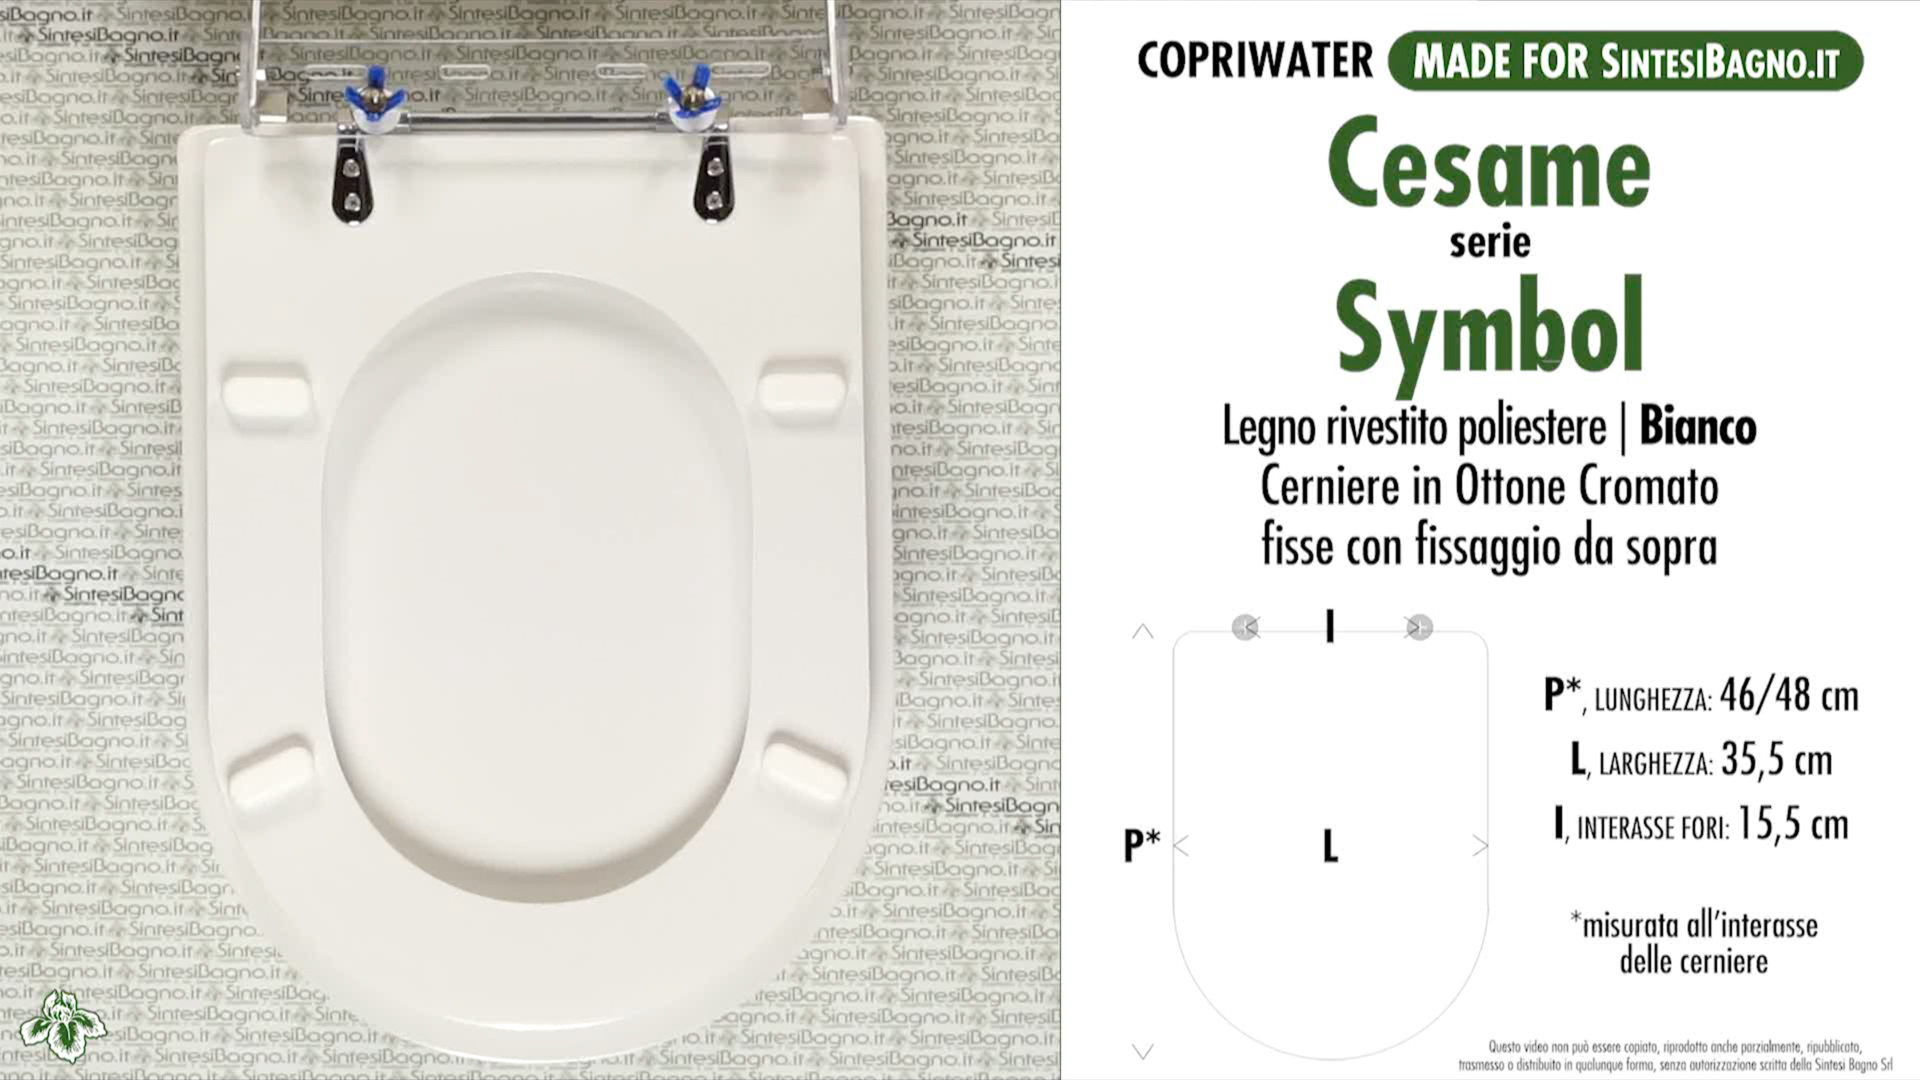 Toilet Seat/WC-Seat SintesiBagno MADE for Cesame WC SYMBOL series ...